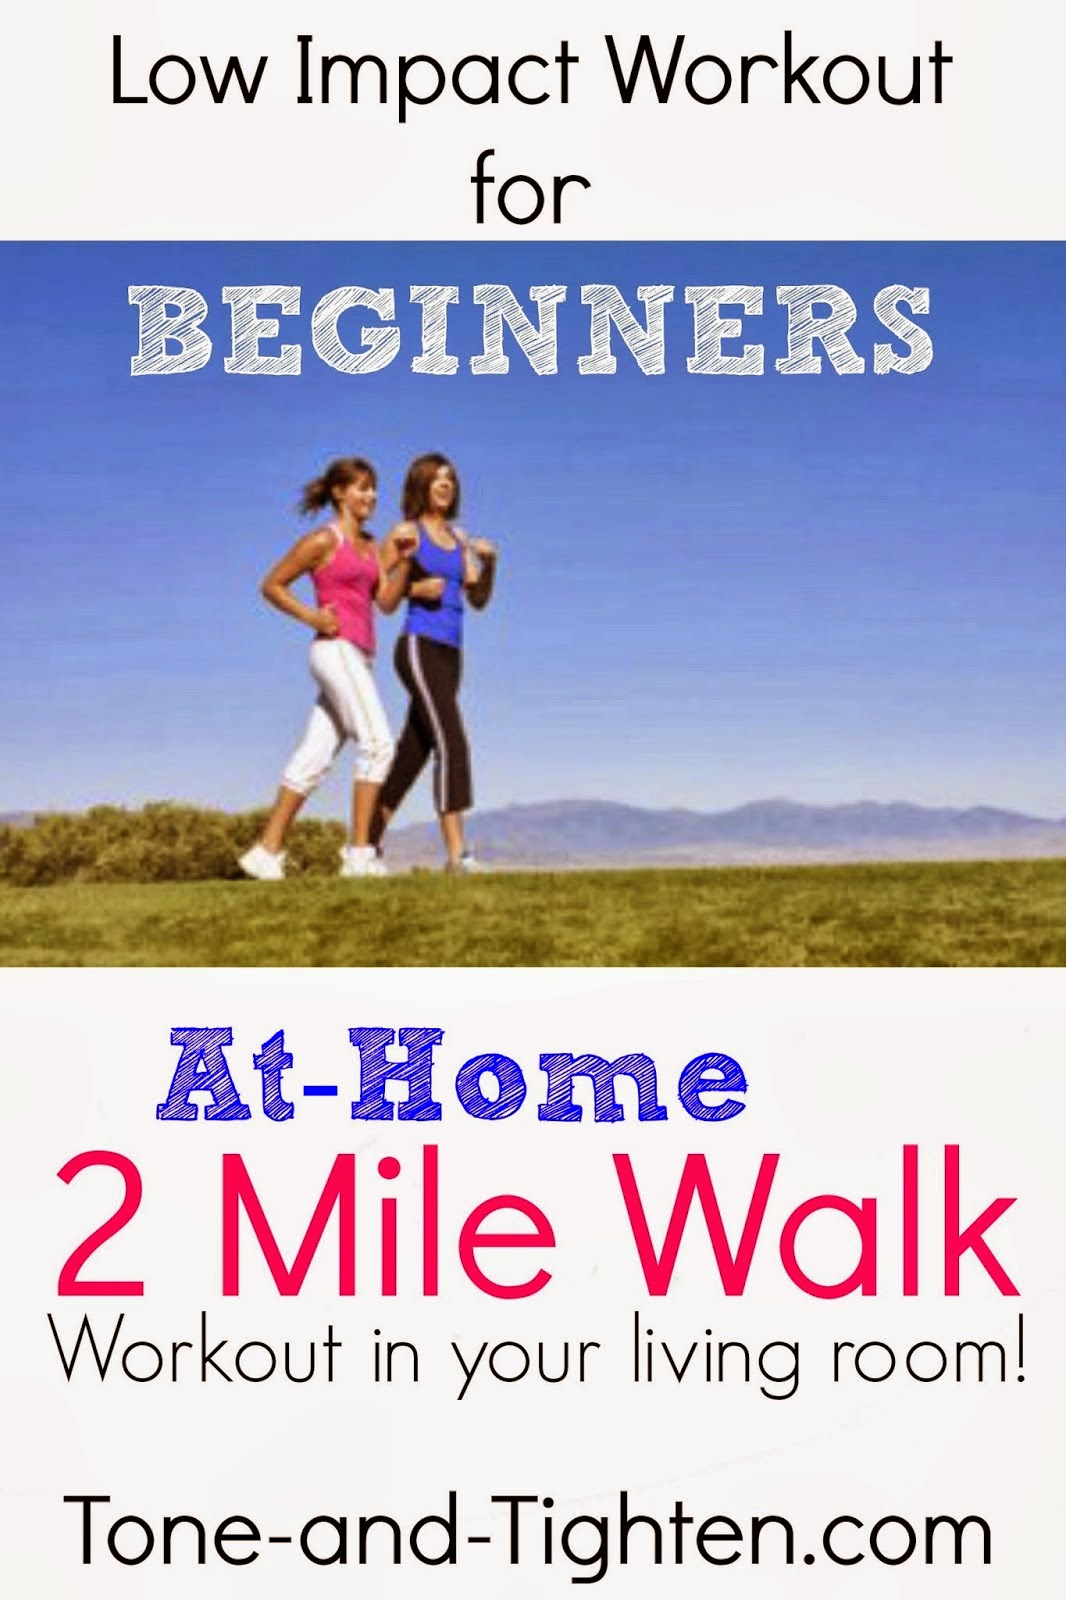 http://tone-and-tighten.com/2014/01/low-impact-workout-for-beginners-at-home-2-mile-walk.html